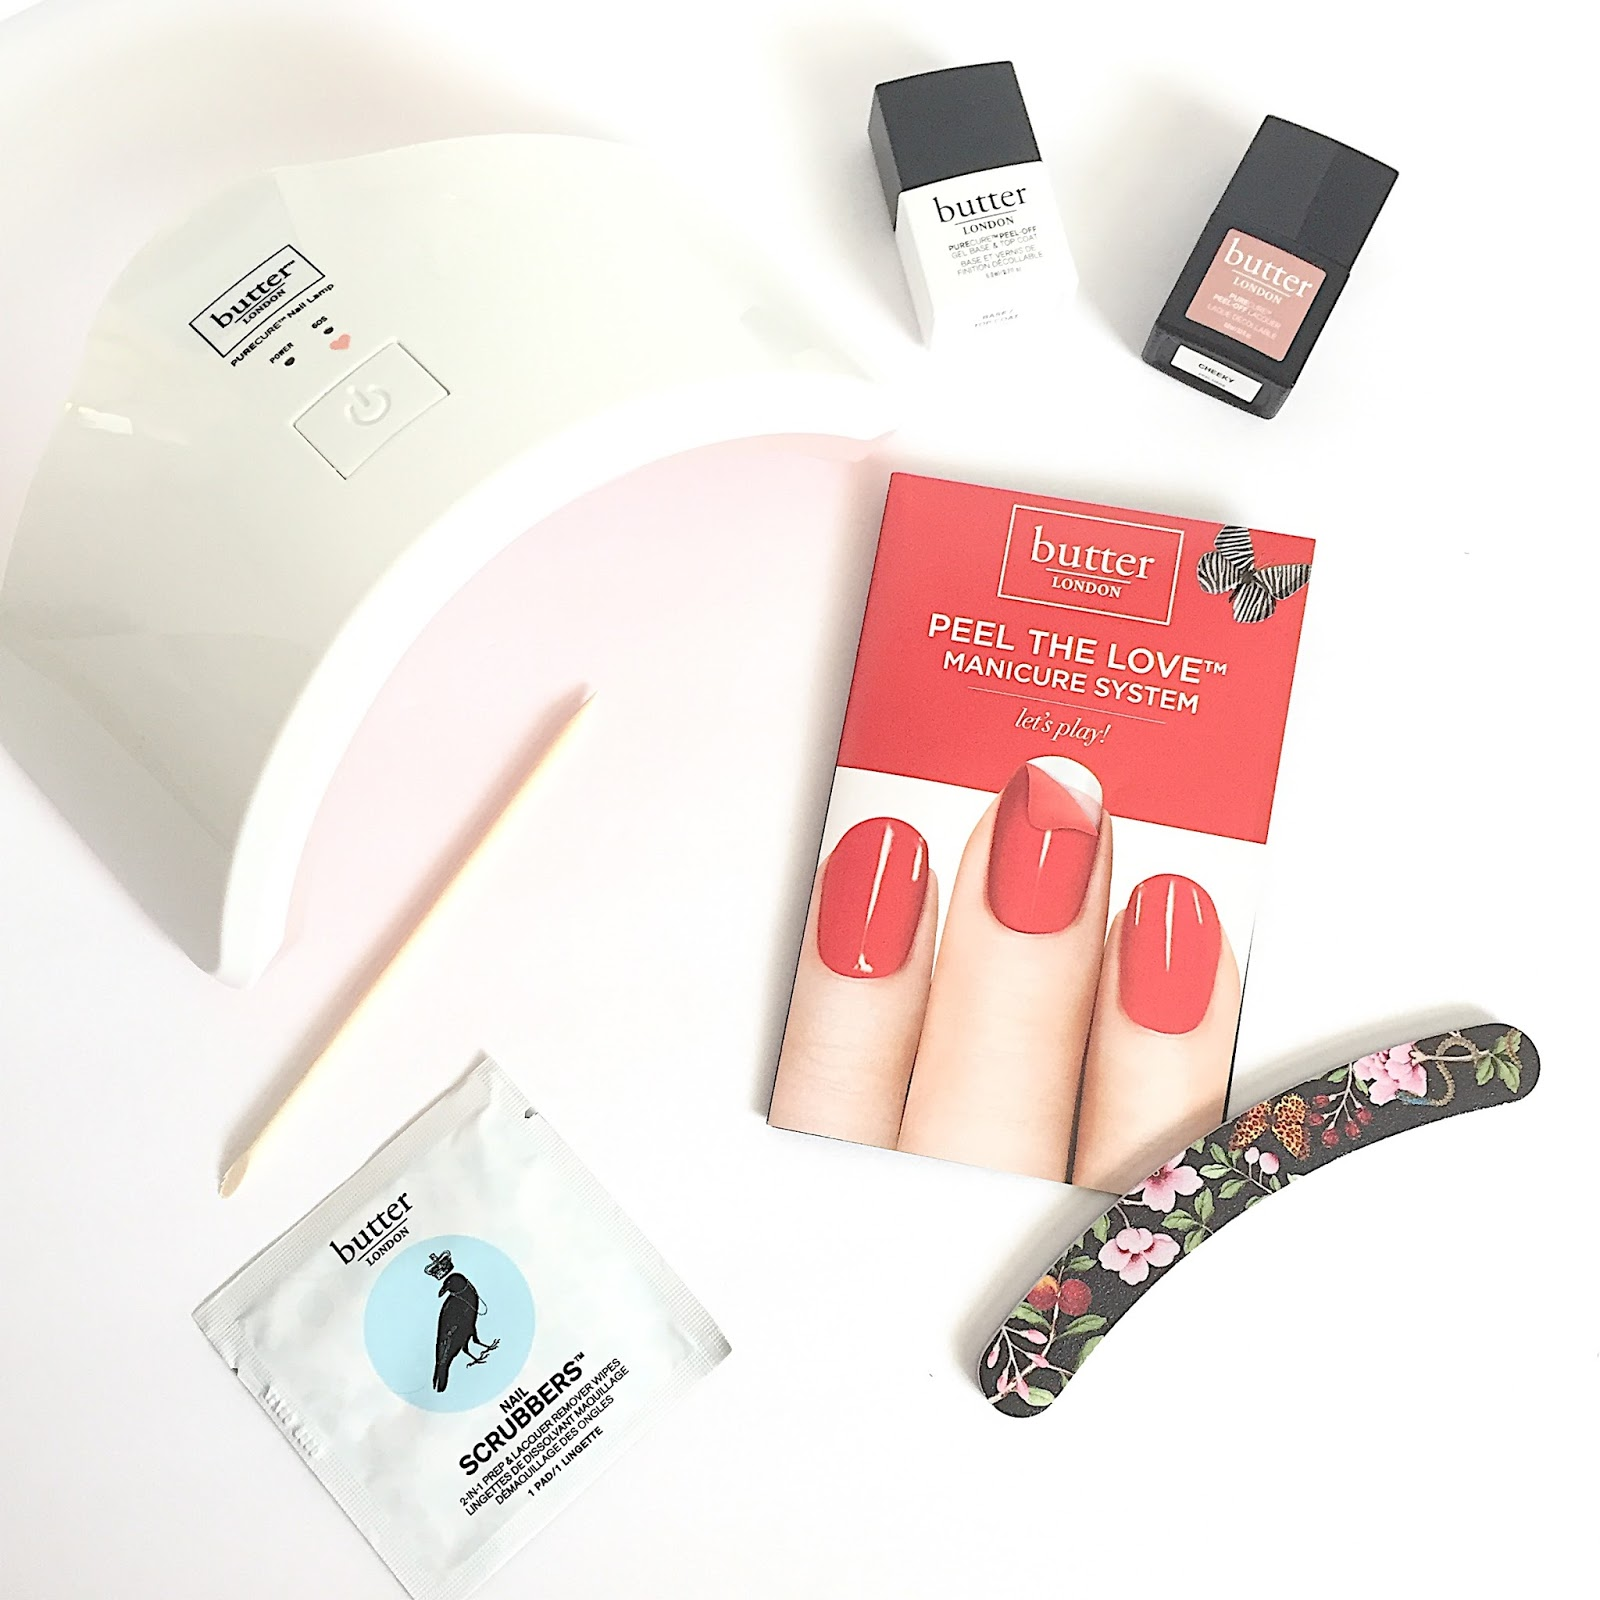 Butter London PureCure Manicure System